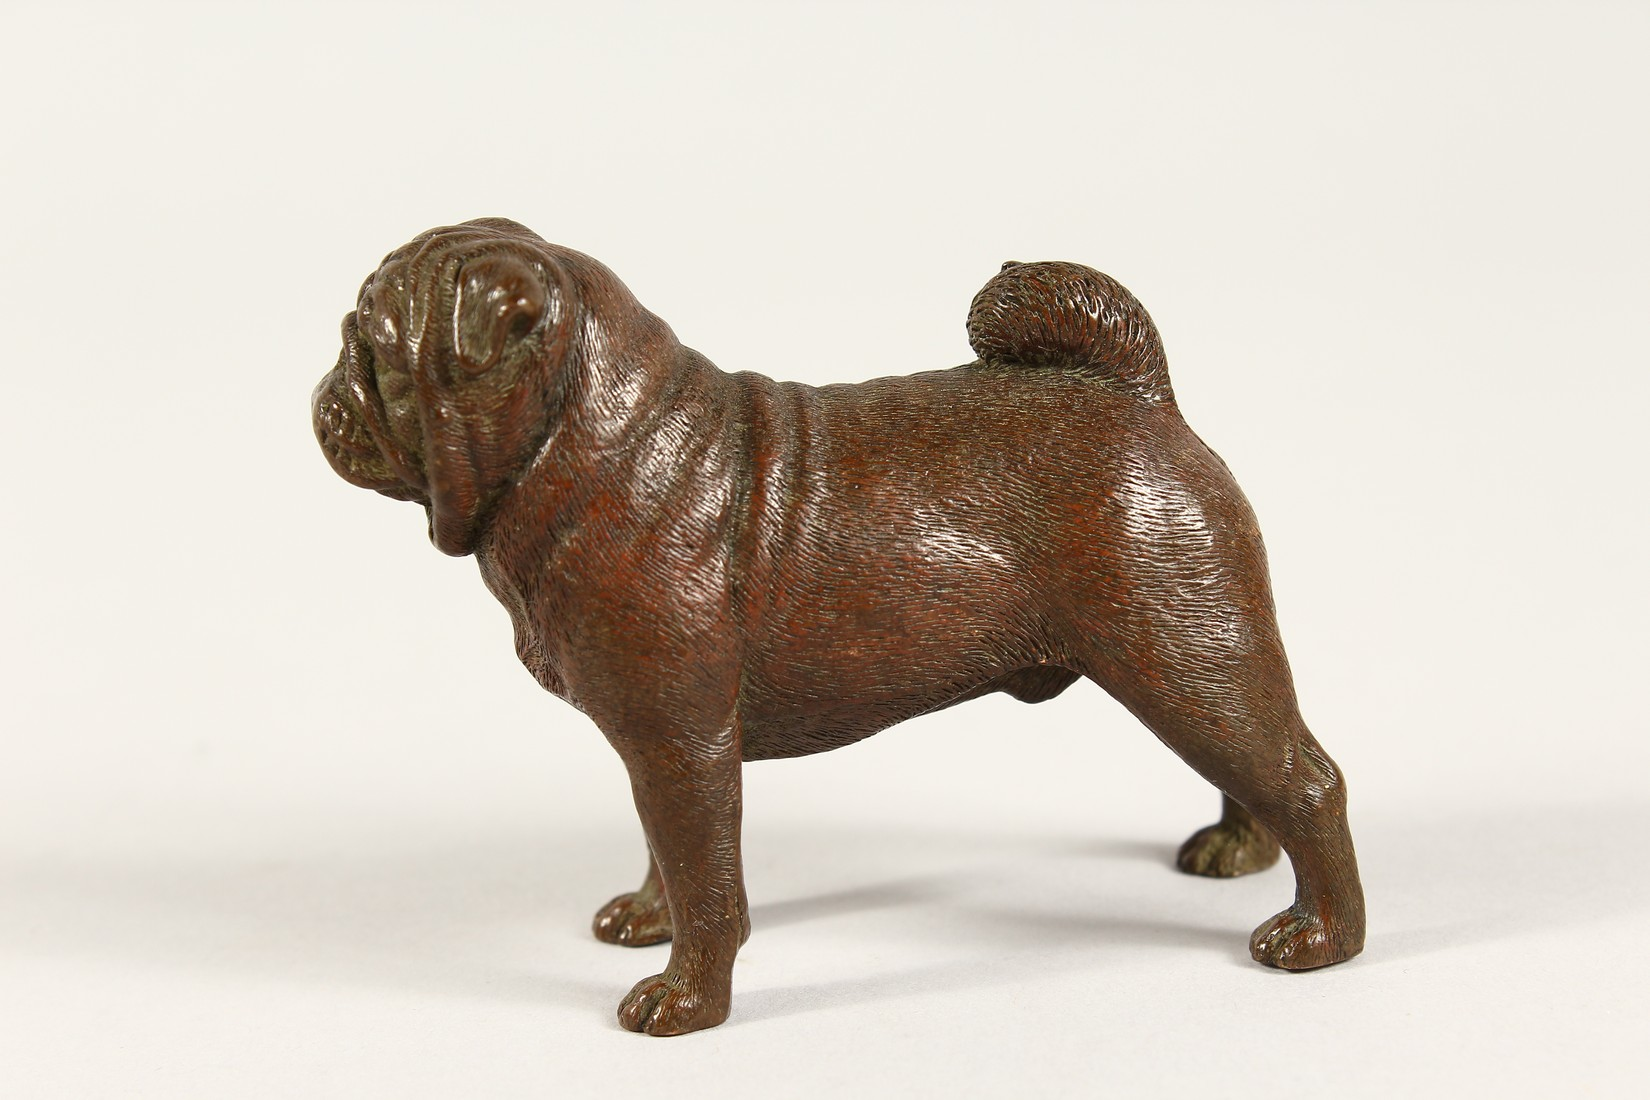 A SMALL HEAVY BRONZE PUG DOG 3ins long - Image 2 of 3